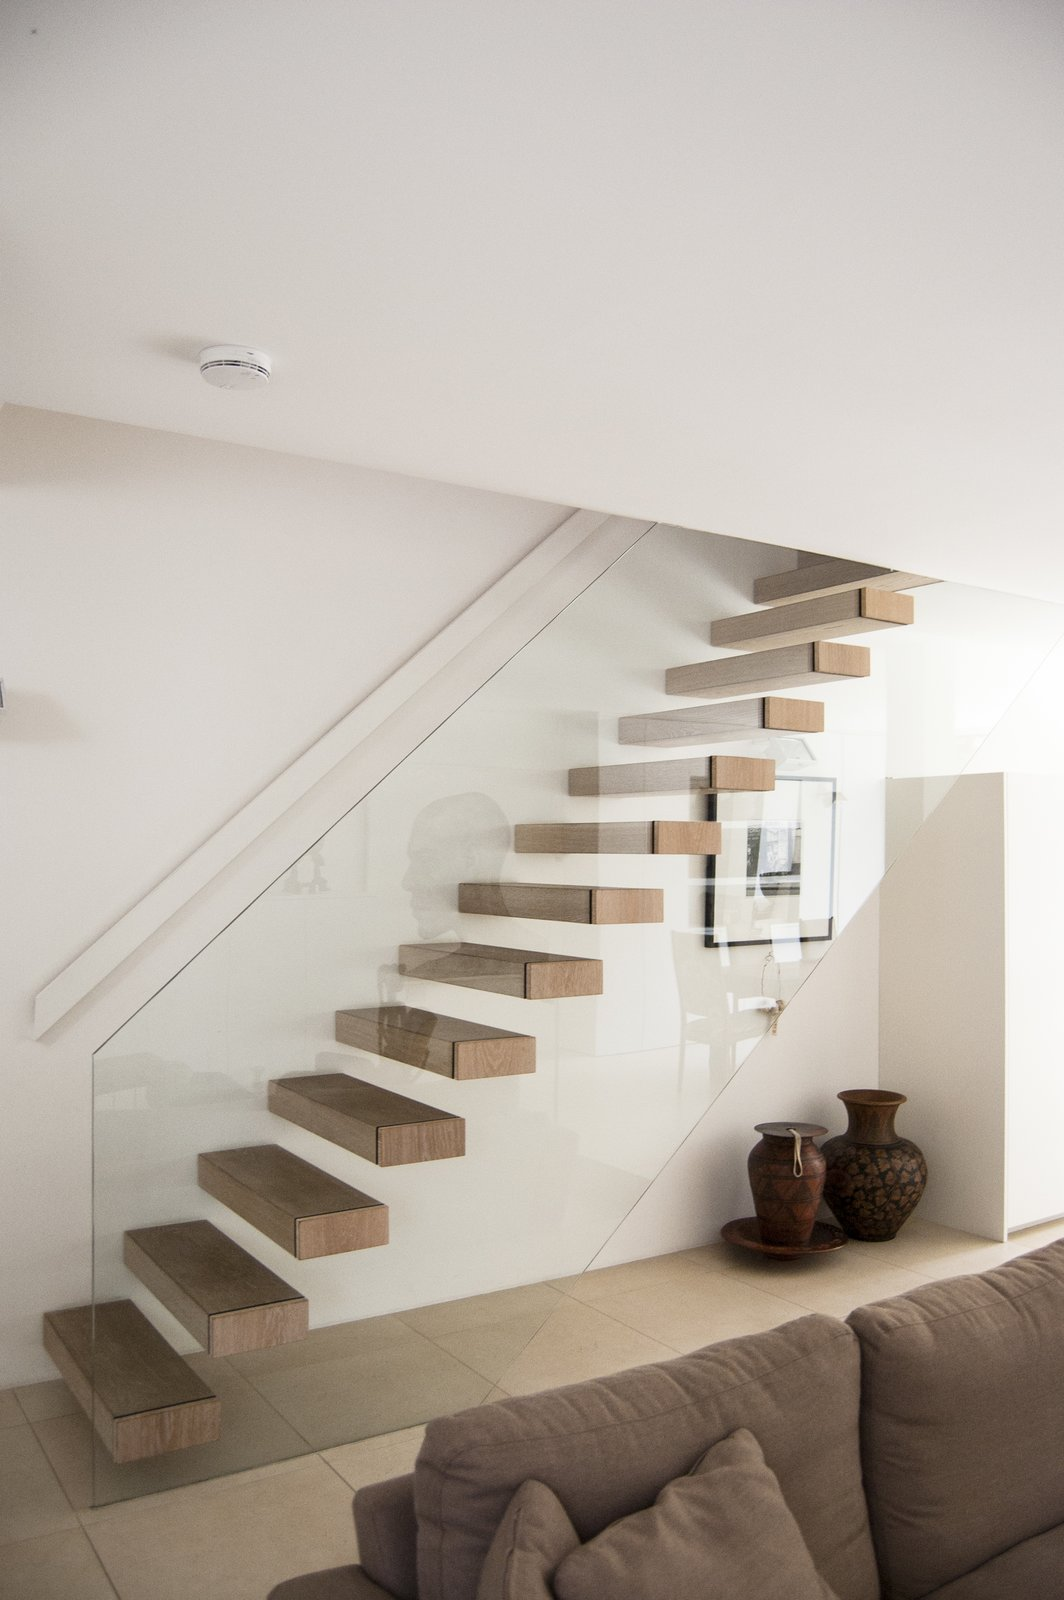 Glass Railing, Wood Tread, Living Room, Ceramic Tile Floor, and Sofa Living and dining spaces are open-plan to the kitchen and courtyard, all of which share a continuous, tiled floor finish.  Soupçon Brut by WILLIAM TOZER Associates